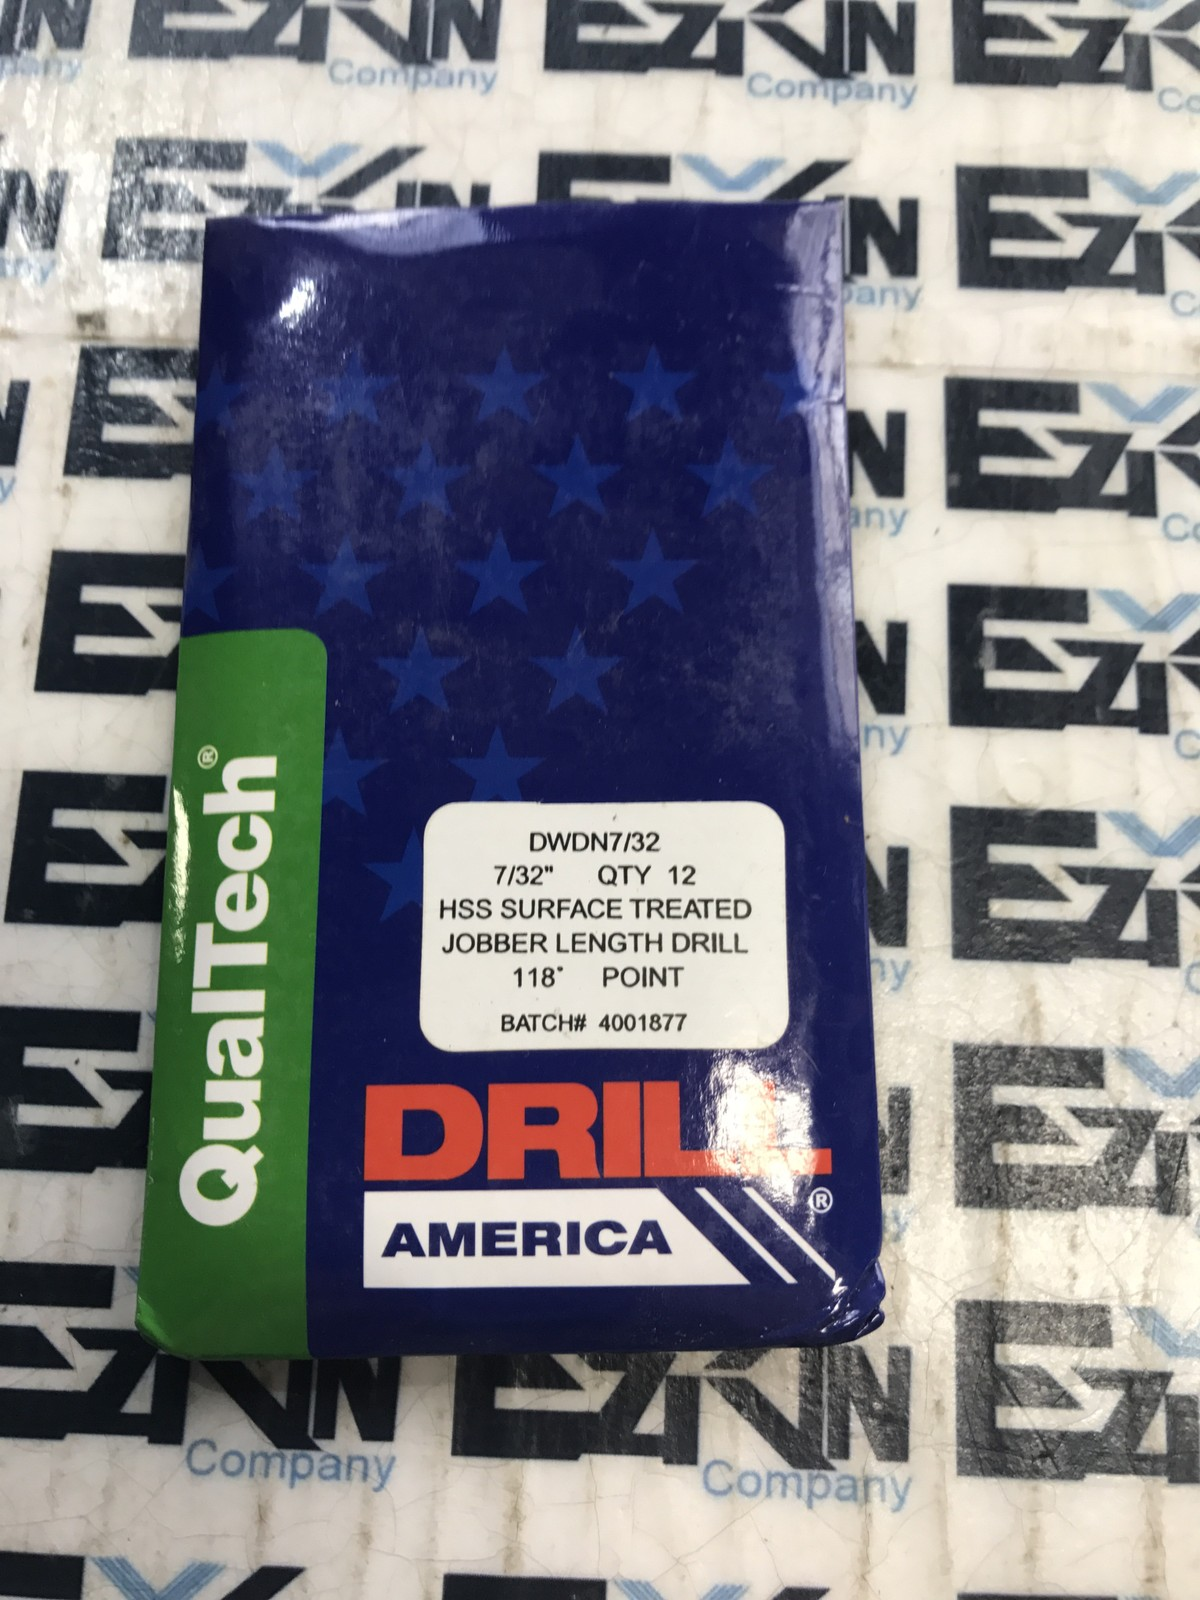 QualTech DWDN7/32 HSS SURFACE TREATED JOBBER LENGHT DRILL QTY 12